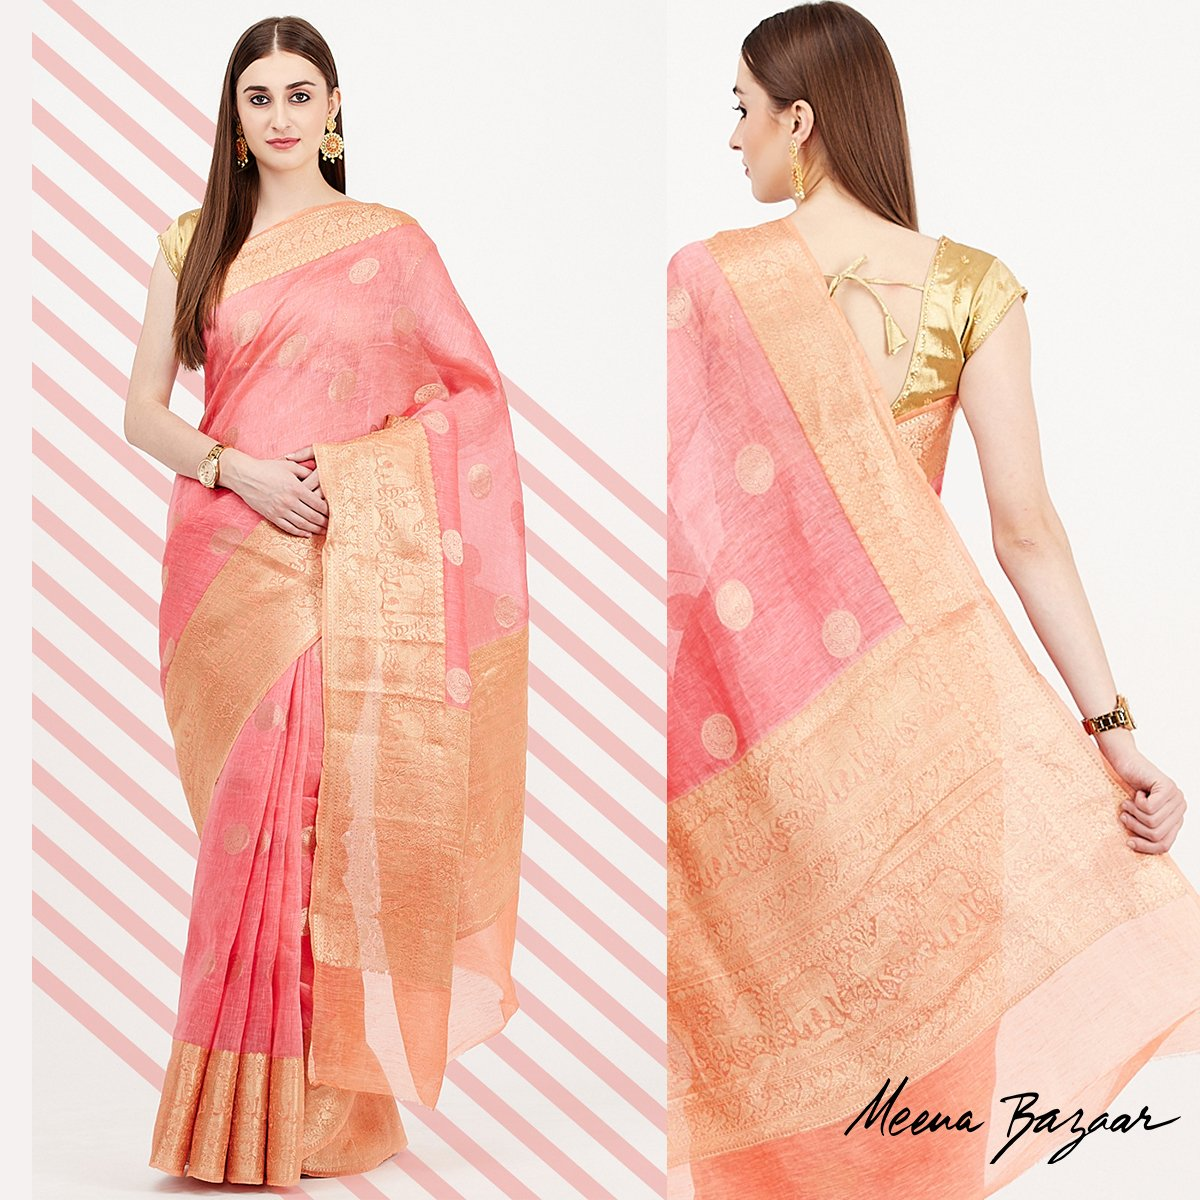 Outshine everyone with your elegant flair as you adorn masterpieces crafted by Meena Bazaar Worldwide Delivery Available | Free Shipping in India Shop: mbz.in/collections/sa… #MeenaBazaar #CursiveWalaMB #Saree #SareeTwitter #Kurti #Lehenga #jewelry #MBZ #ethnicindianwear